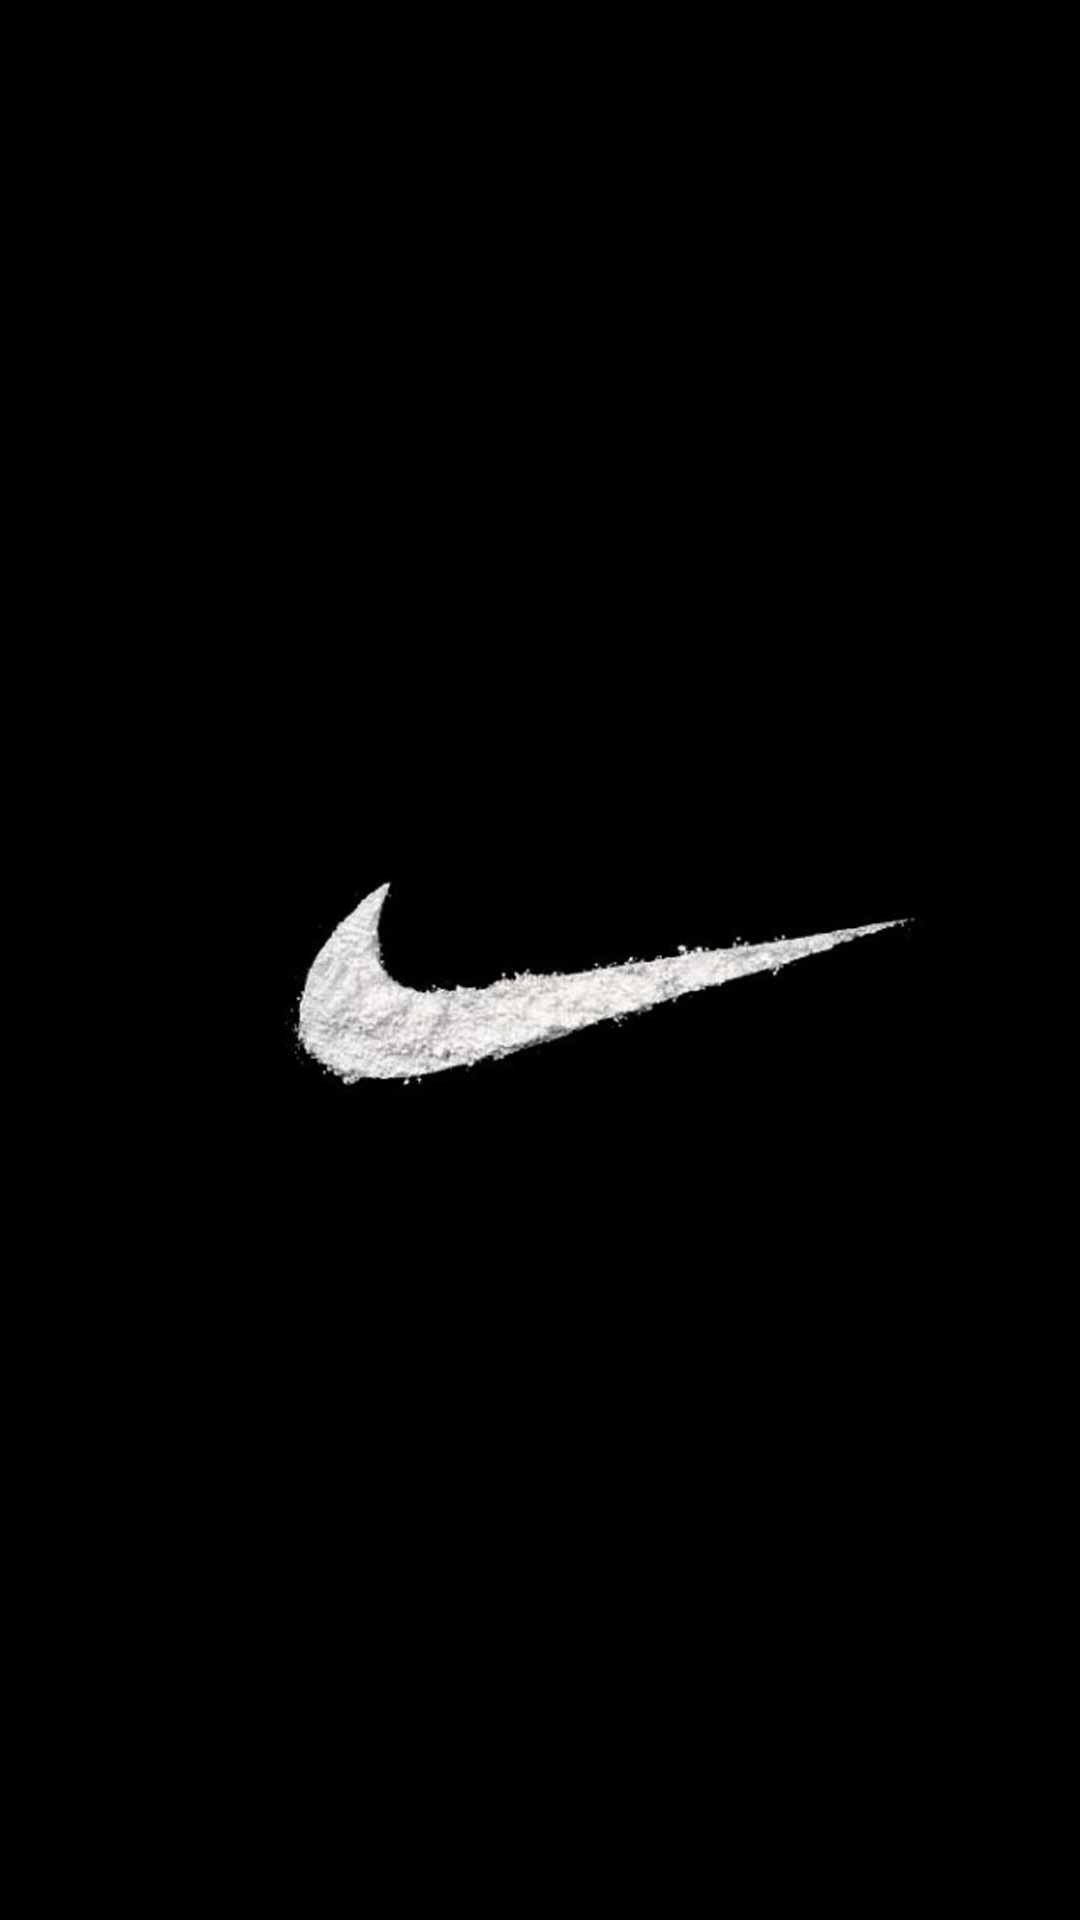 Download free nike wallpapers for iphone wallpaper voltagebd Gallery